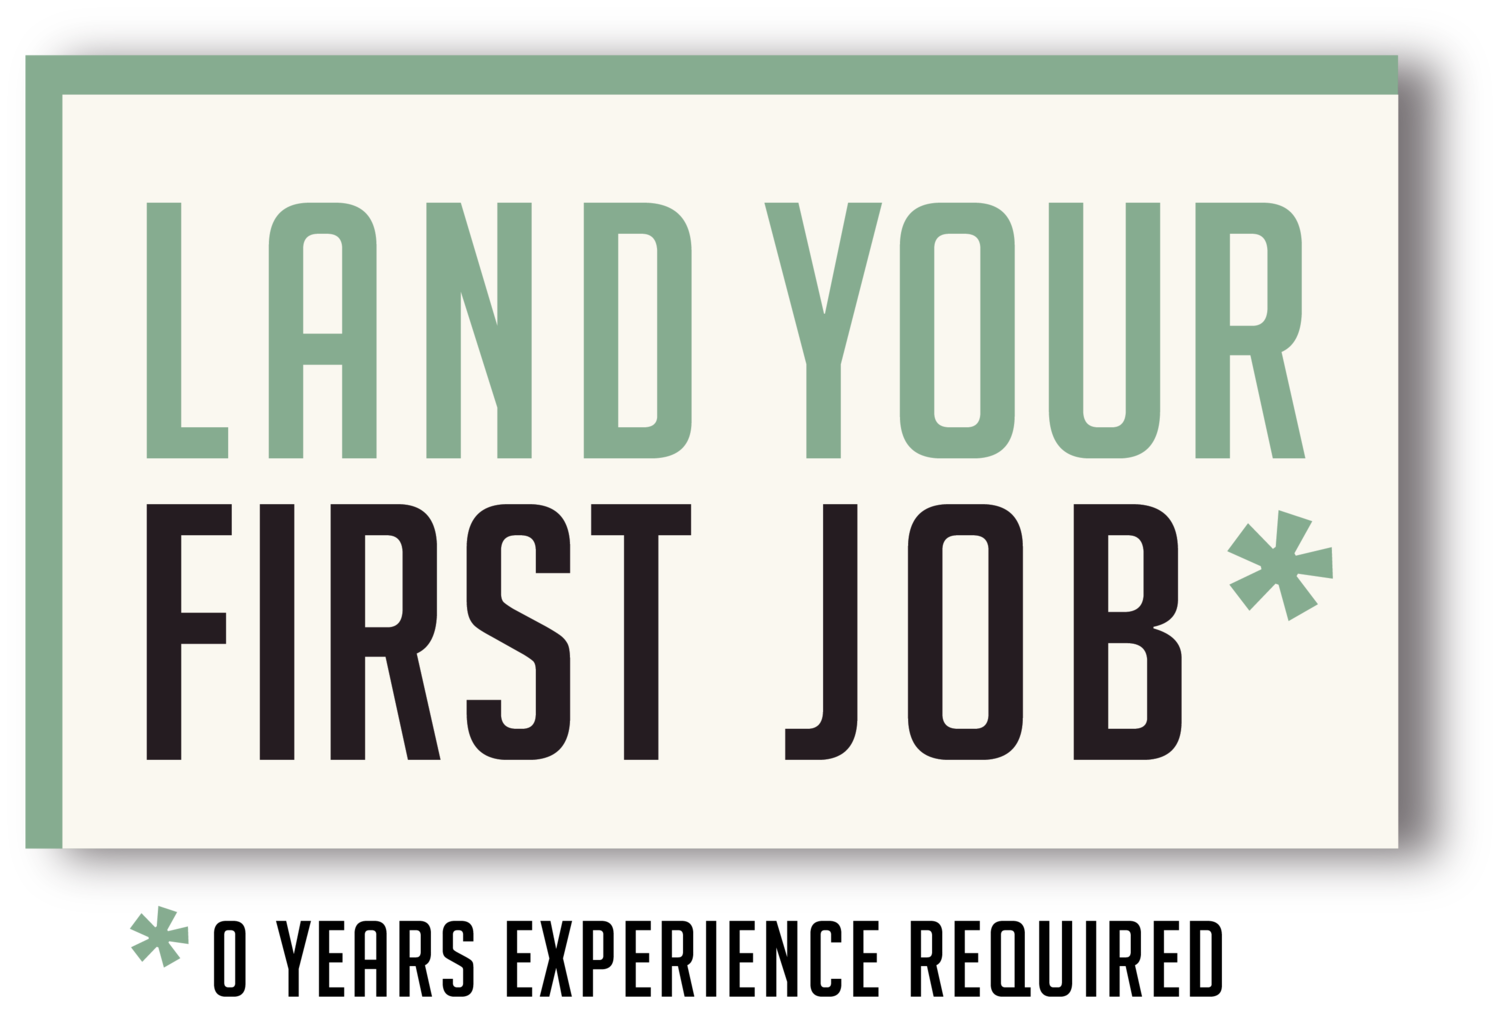 apply for coaching land your first job land your first job